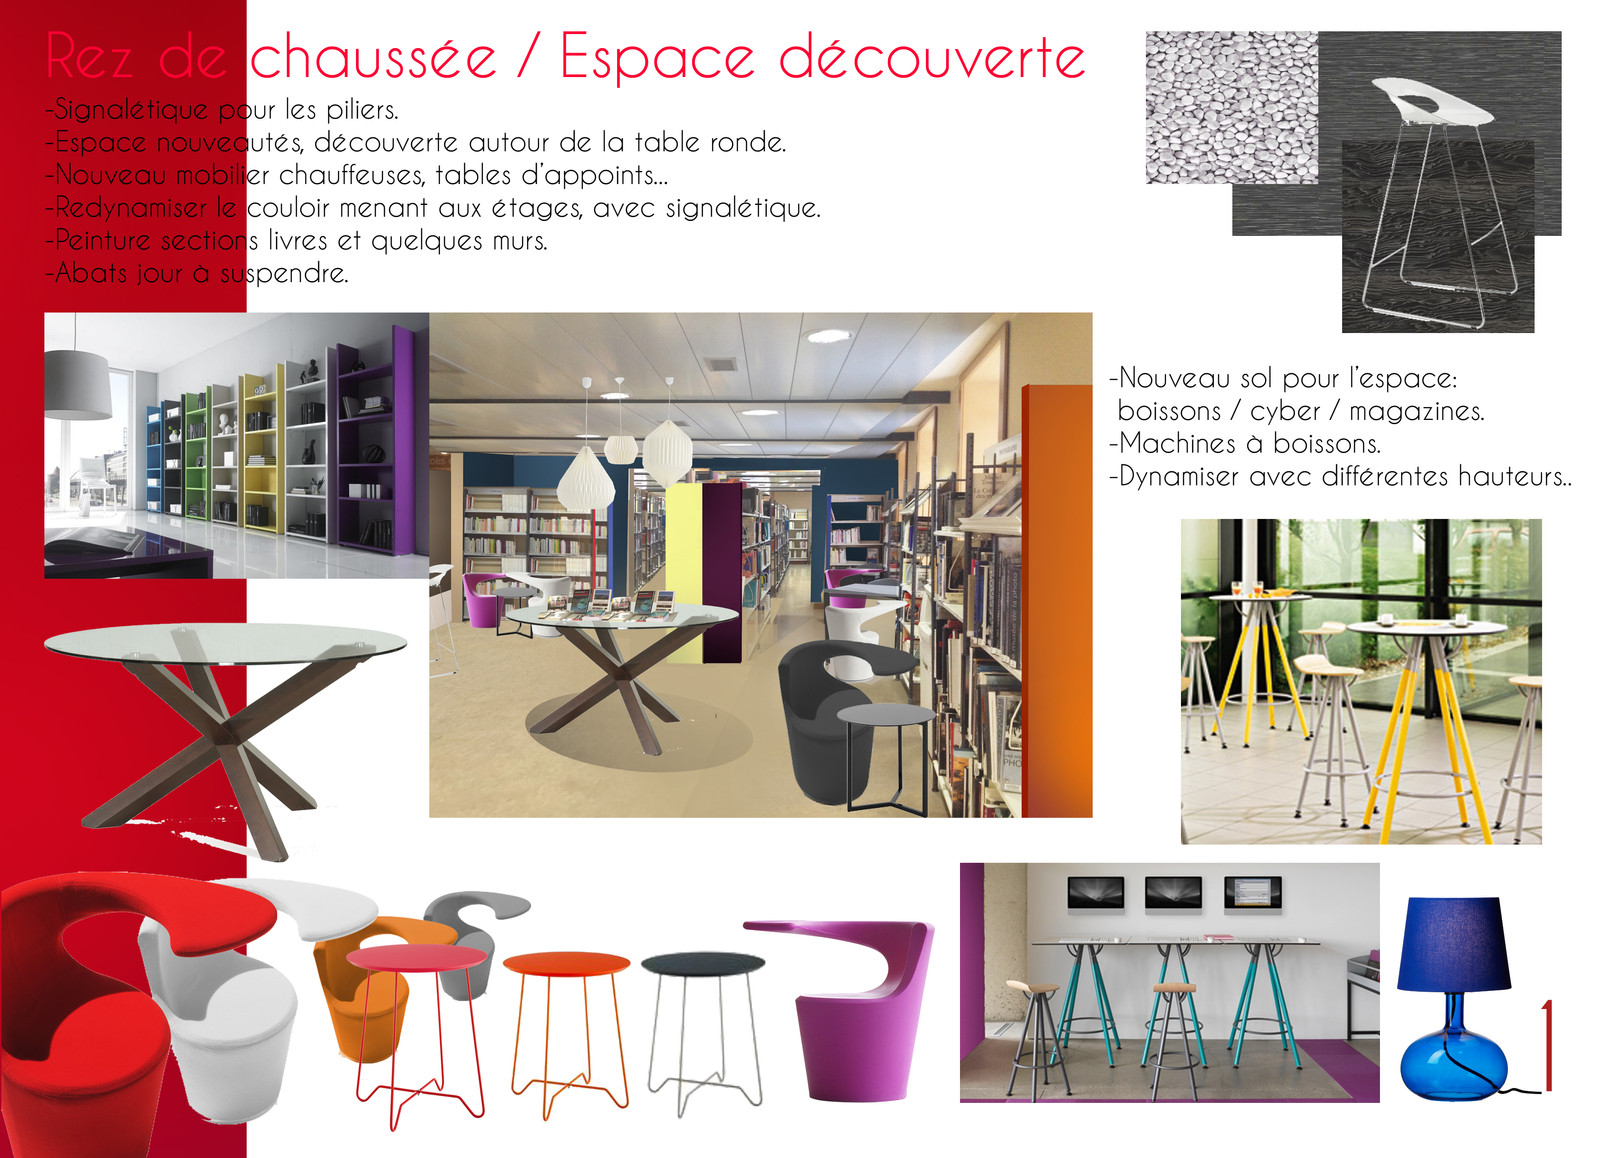 manilay pluquailec architecte d 39 int rieur montpellier et alentours. Black Bedroom Furniture Sets. Home Design Ideas